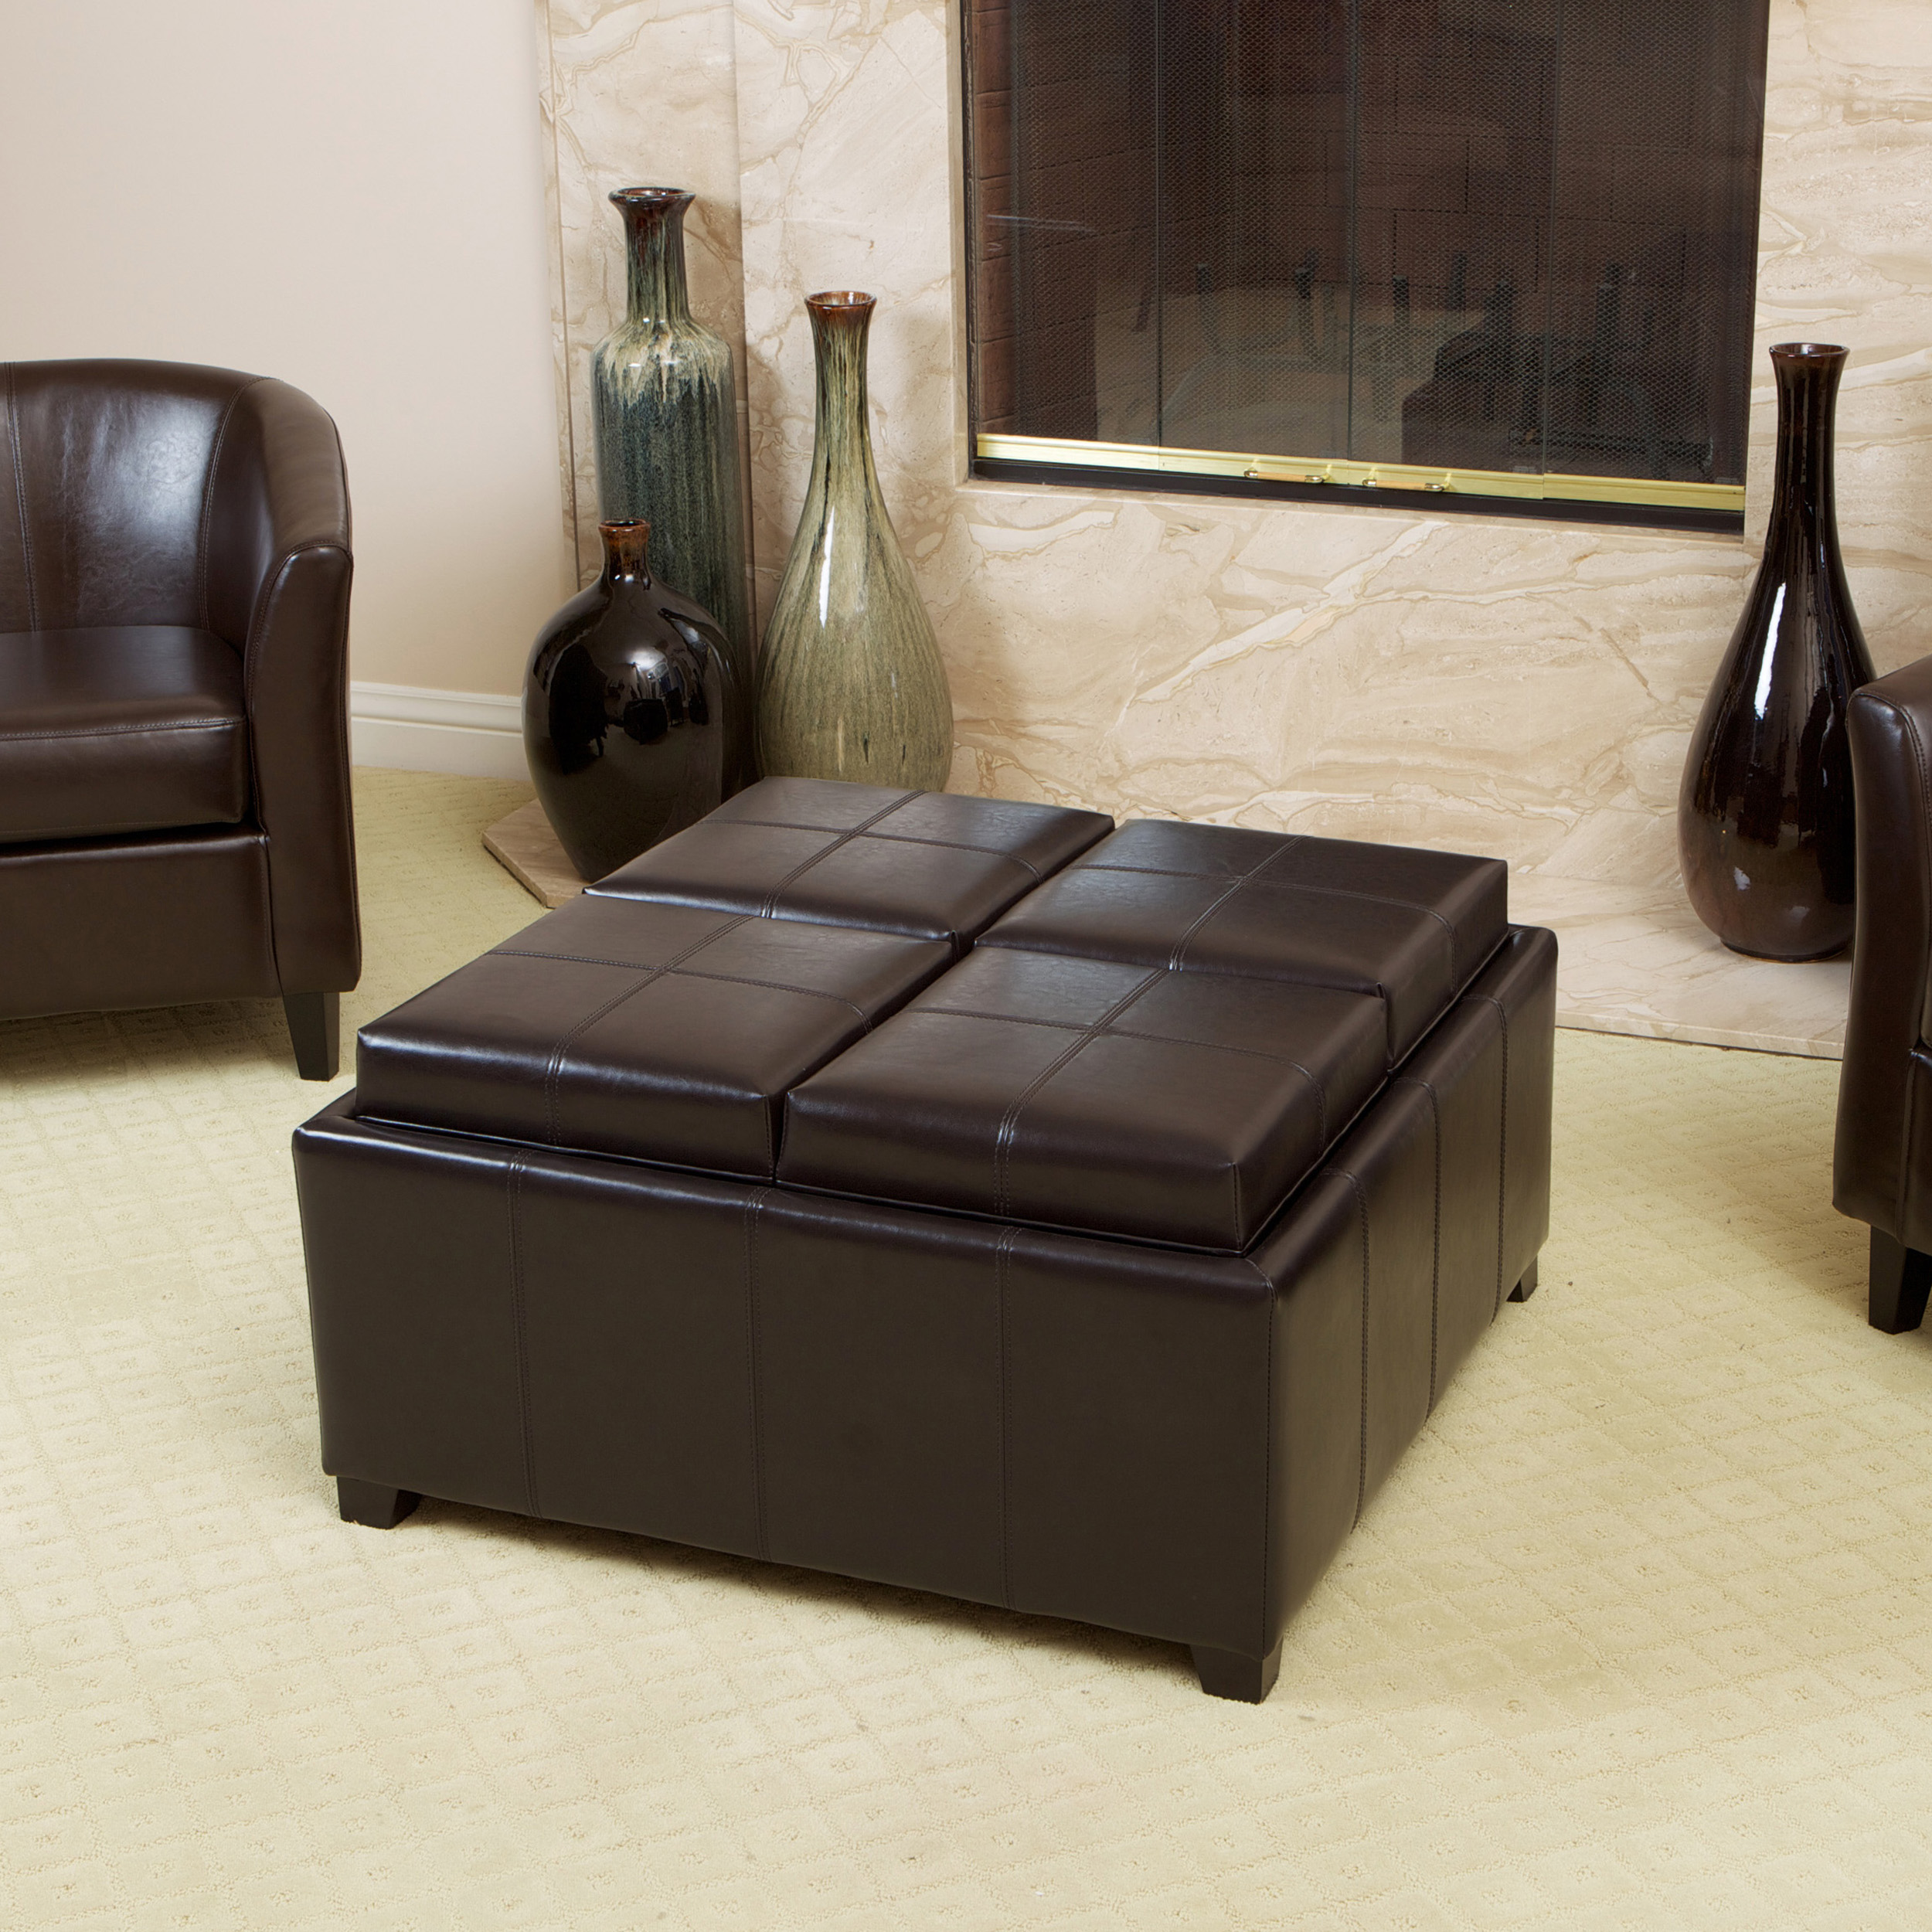 Sensational Birmingham Bonded Leather Espresso Tray Top Storage Ottoman Gmtry Best Dining Table And Chair Ideas Images Gmtryco